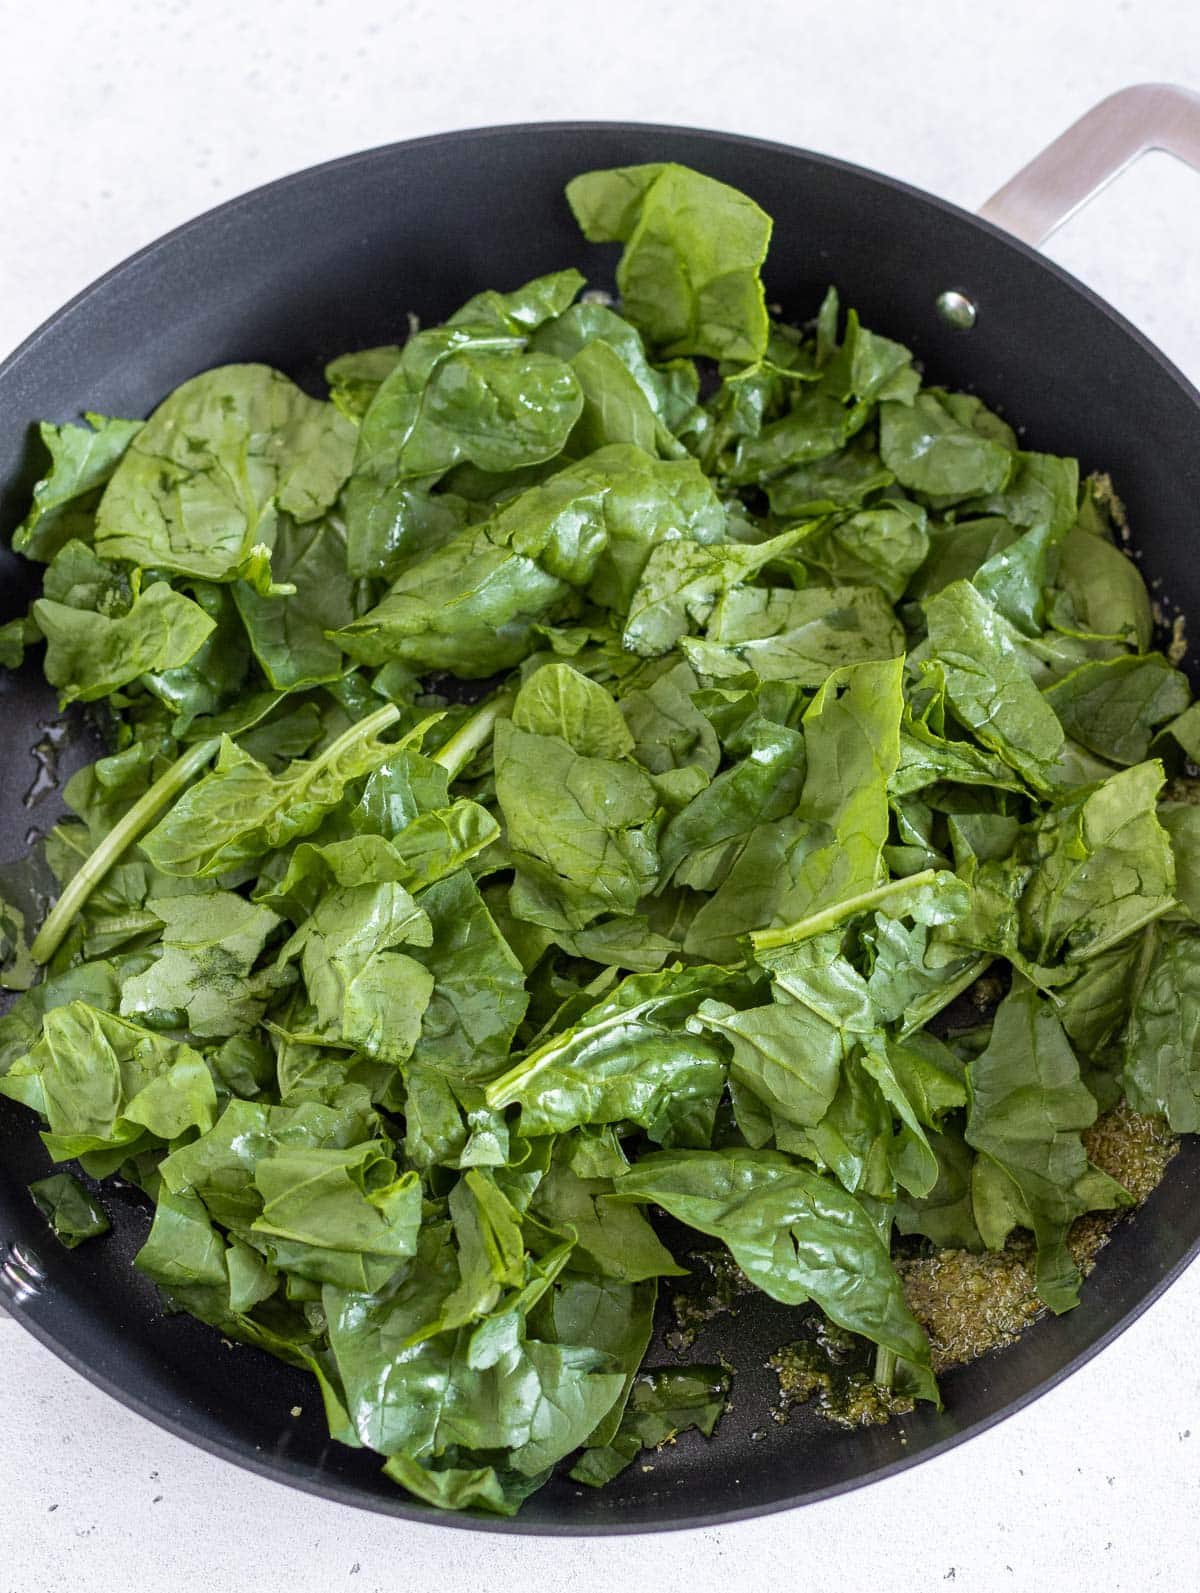 pan frying the spinach for the lemon pasta